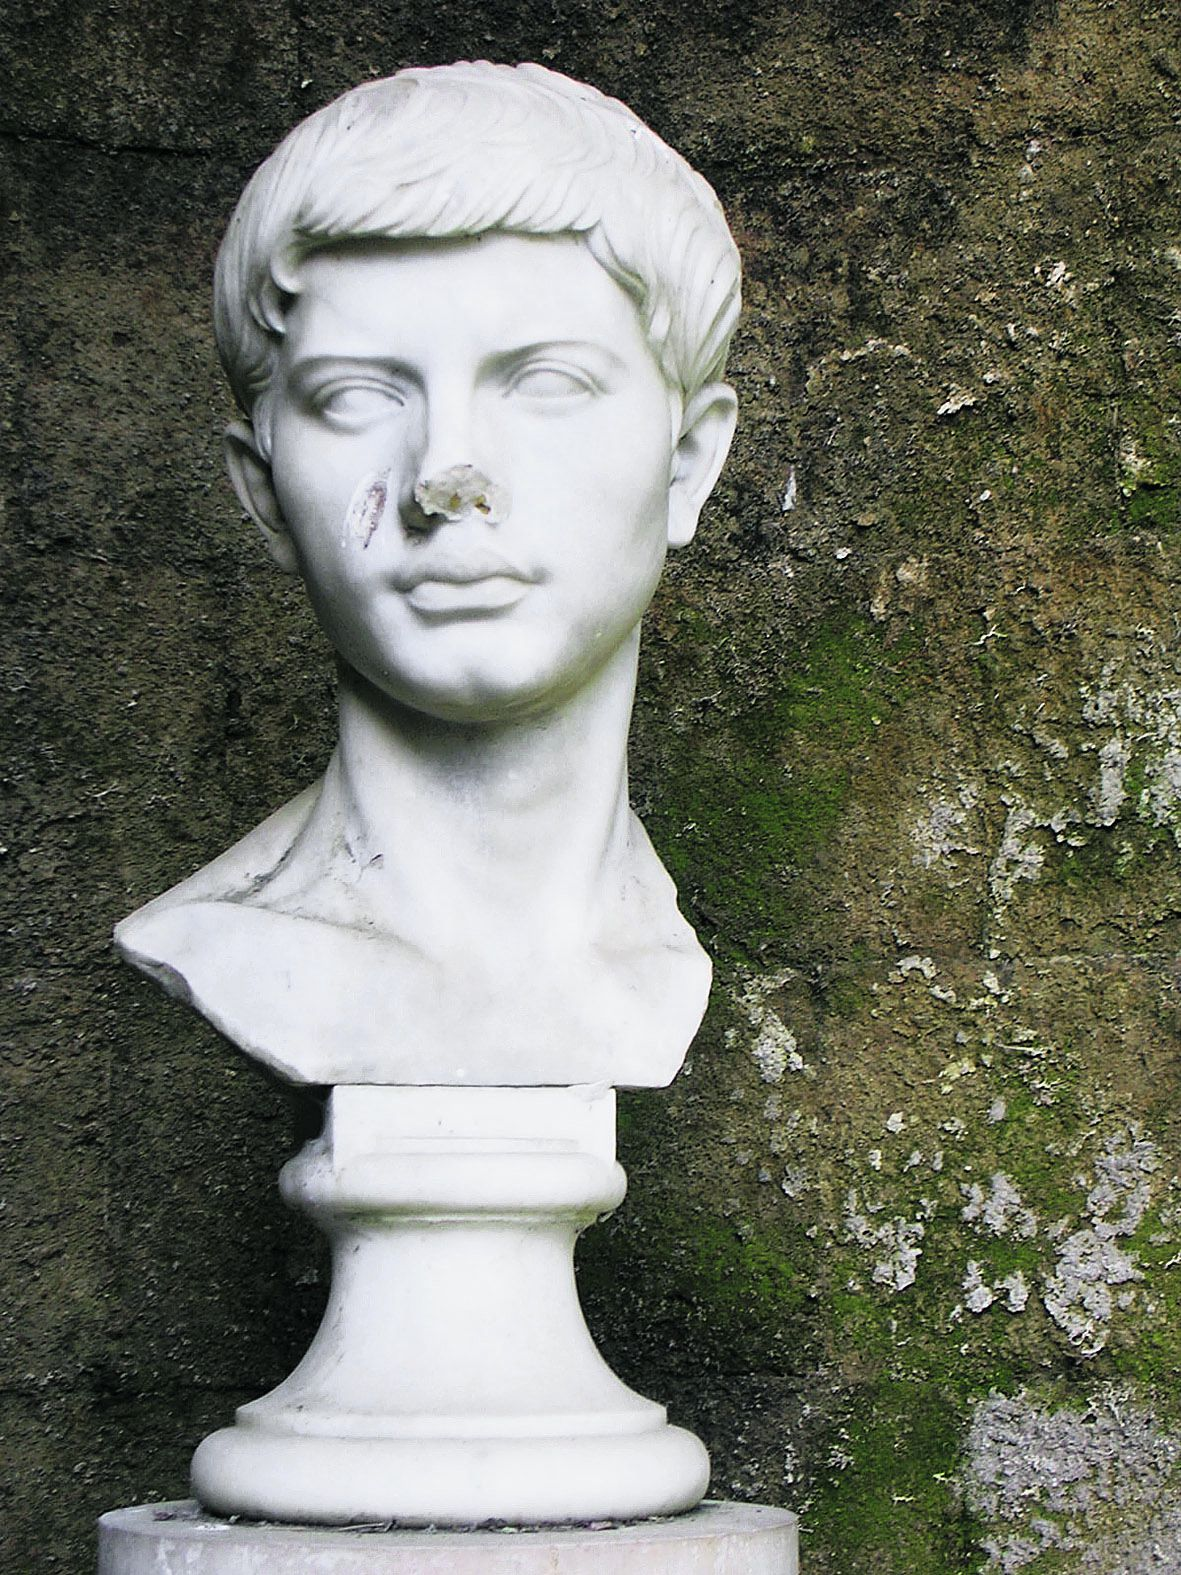 """Ancient Roman bust (so-called """"Bust of Vergil"""") from the Tomb of Vergil in Naples, Italy. Foto: A. Hunter Wright"""